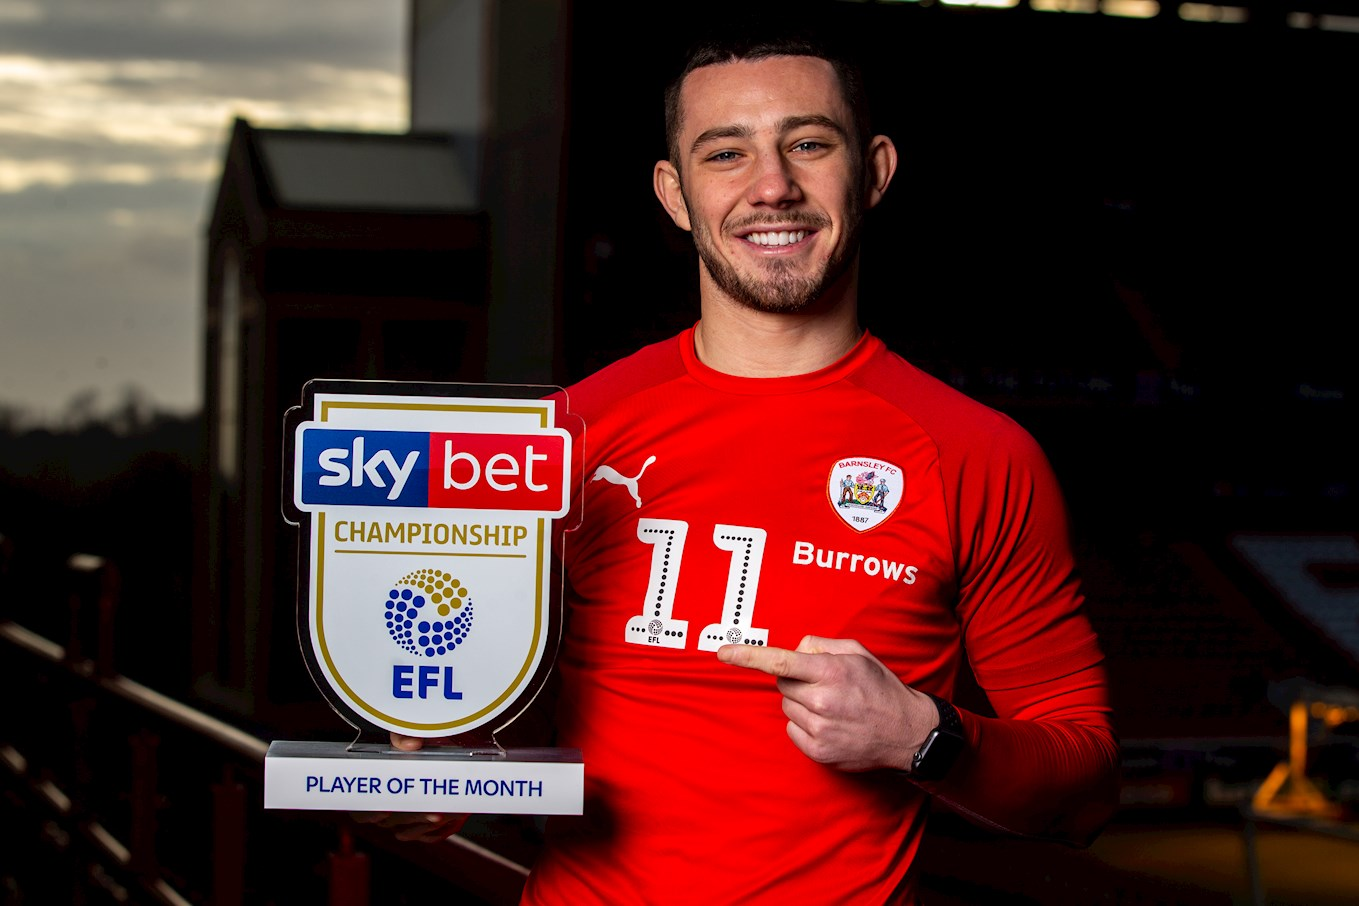 JMP_Sky_Bet_Championship_Player_of_the_Month_Dec19_RS_007.JPG